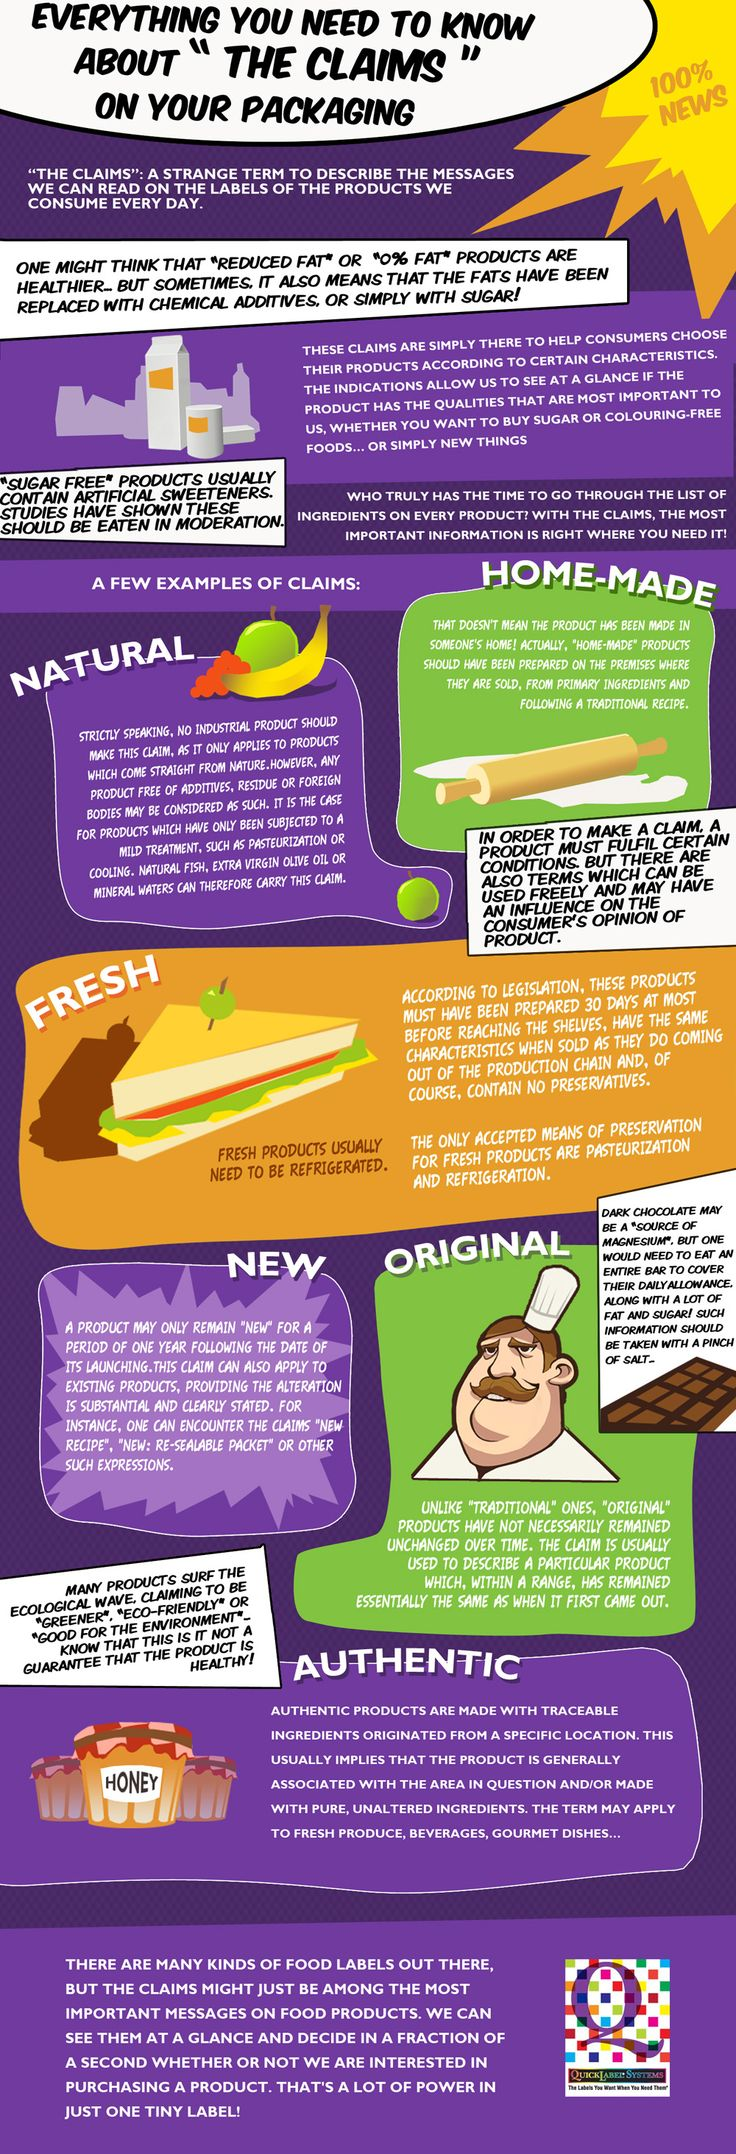 Food labelling for the information you need - Natural? Fresh? Home-made? Original? Authentic? This infographic description gives you the low down on what these terms, and many others, mean when applied to food labelling. http://www.quicklabel.co.uk/